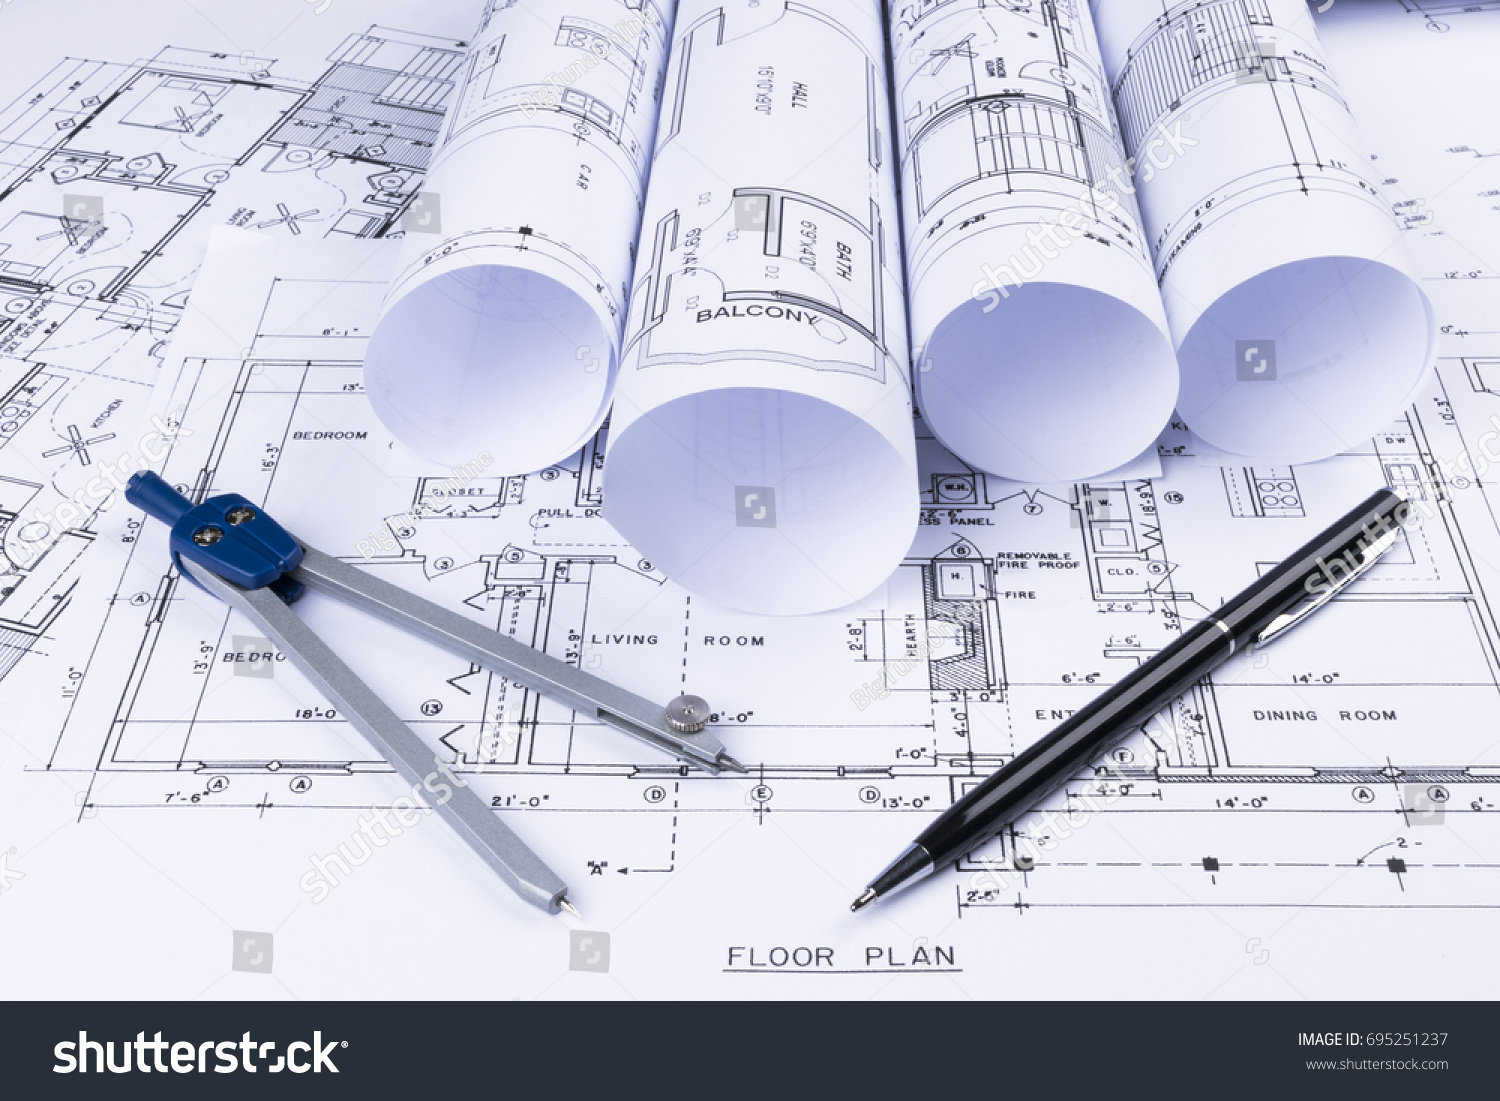 Architectural Blueprints Blueprint Rolls Drawing Instruments ...